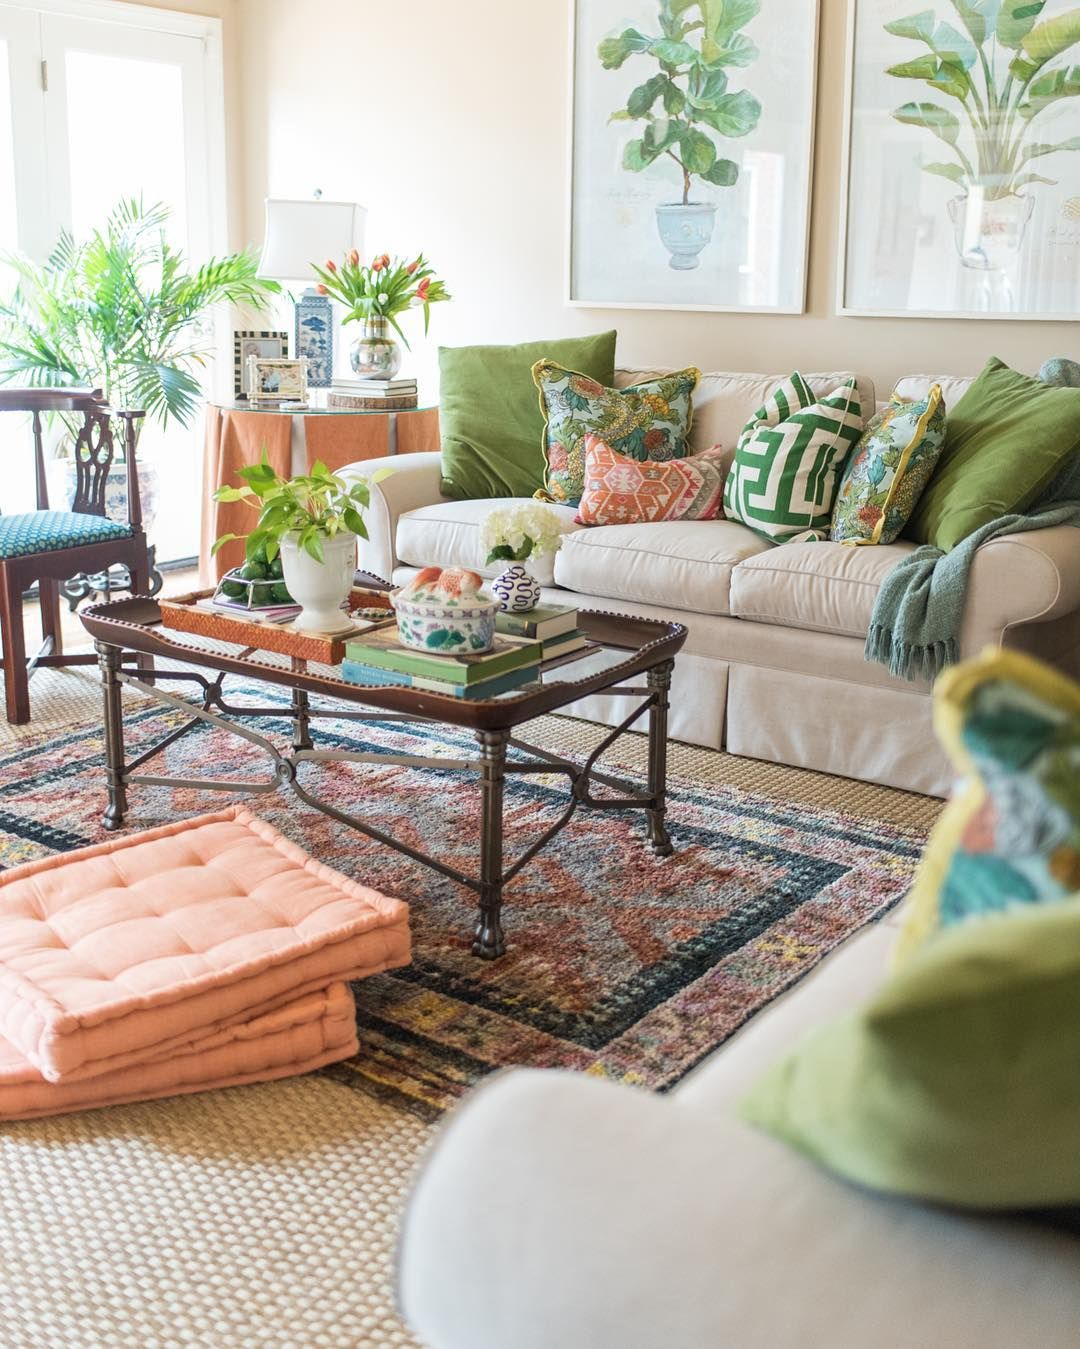 Coastal Living Decor Peach And Green Living Room Decor: Pin By Whitney Akom On House